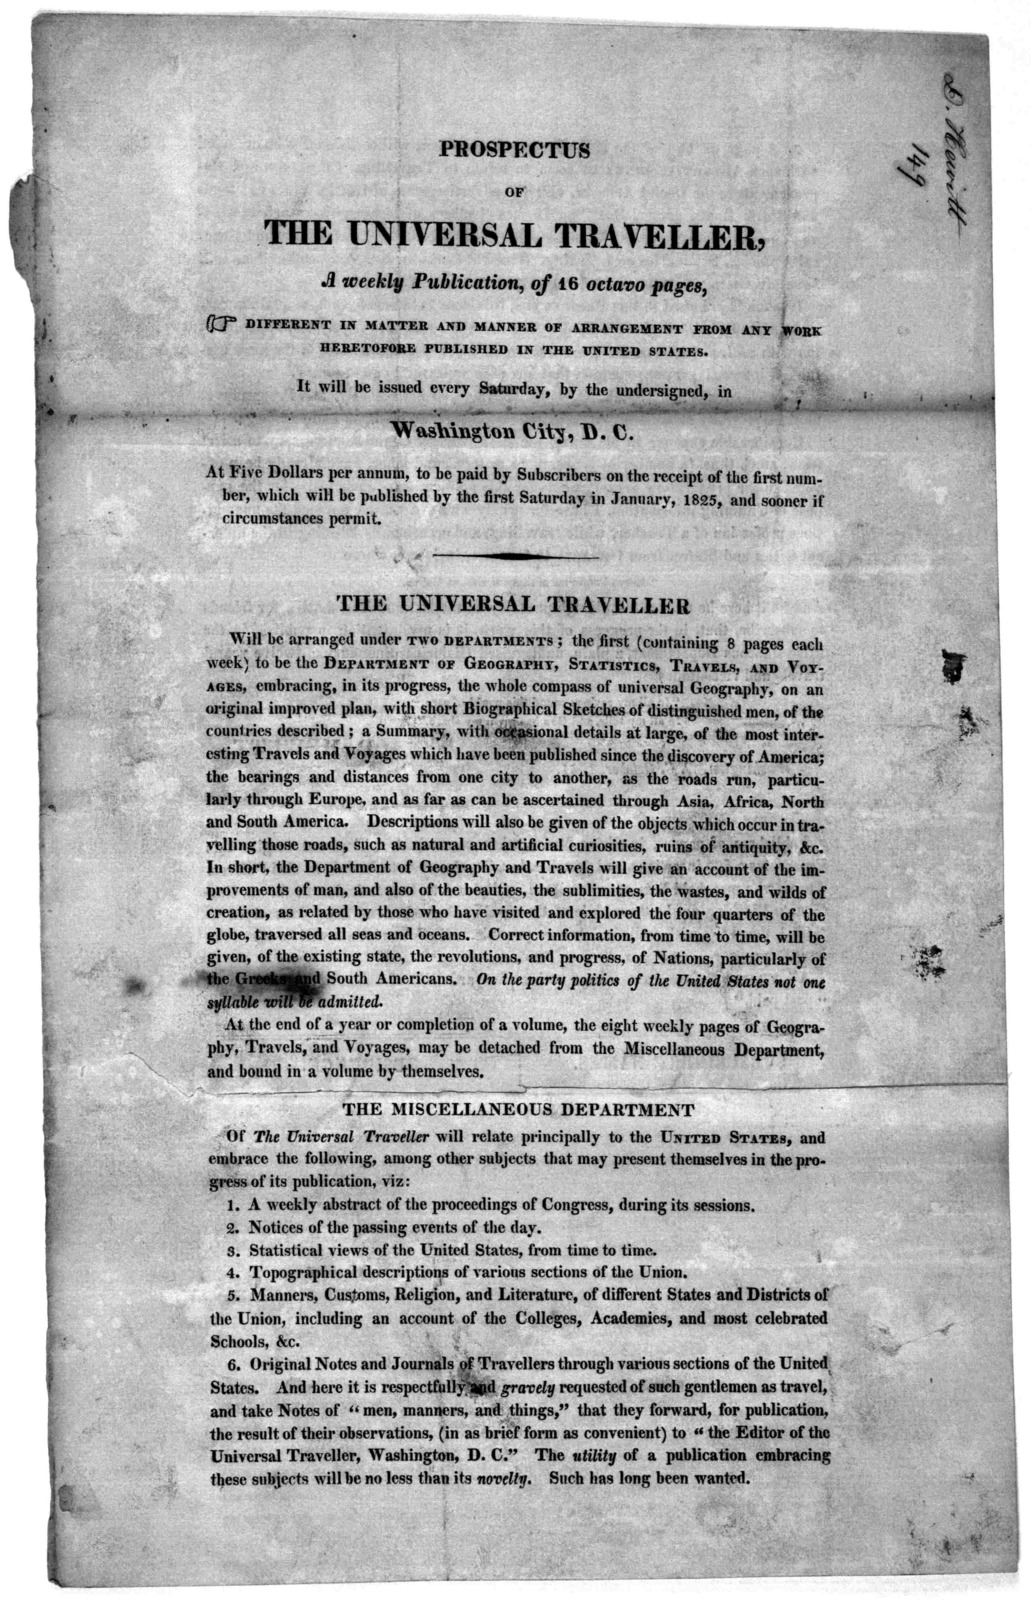 Prospectus of The Universal traveller, A weekly publication, of 16 octavo pages ... It will be issued every Saturday, by the undersigned, in Washington City, D. C. at five dollars per annum ... Washington, D. C. October, 1824.